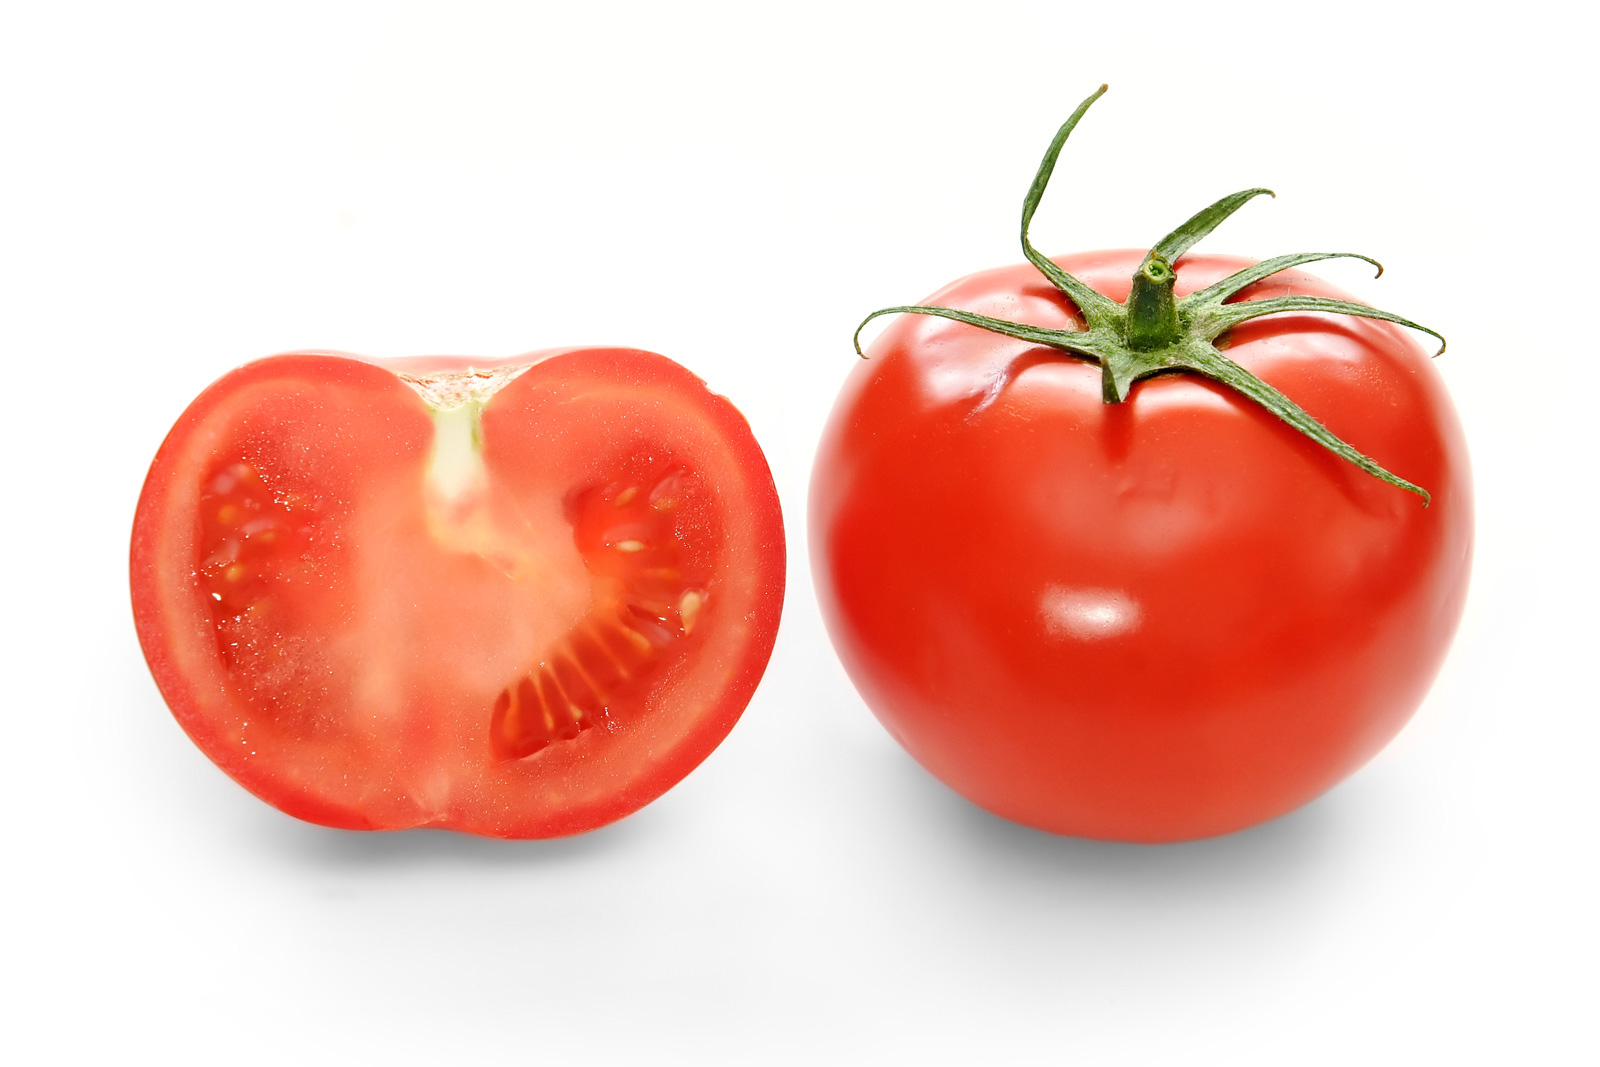 http://upload.wikimedia.org/wikipedia/commons/8/88/Bright_red_tomato_and_cross_section02.jpg